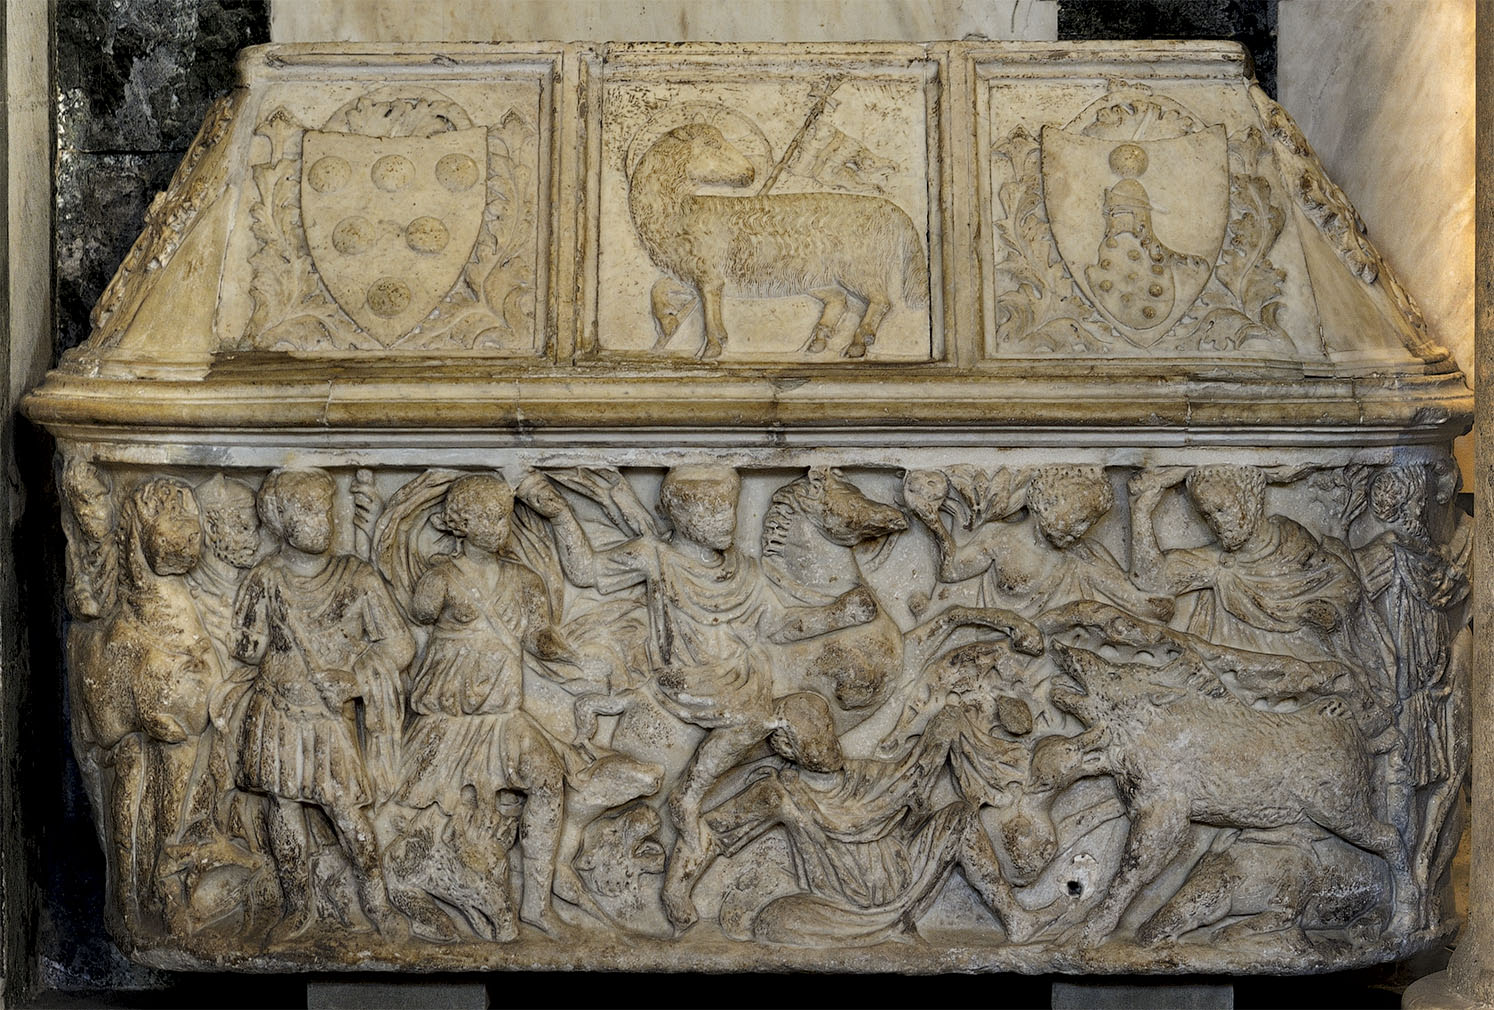 A lenos-shaped sarcophagus with a scene of the Calydonian Hunt. Marble. 4th cent. CE. Florence, Baptistery